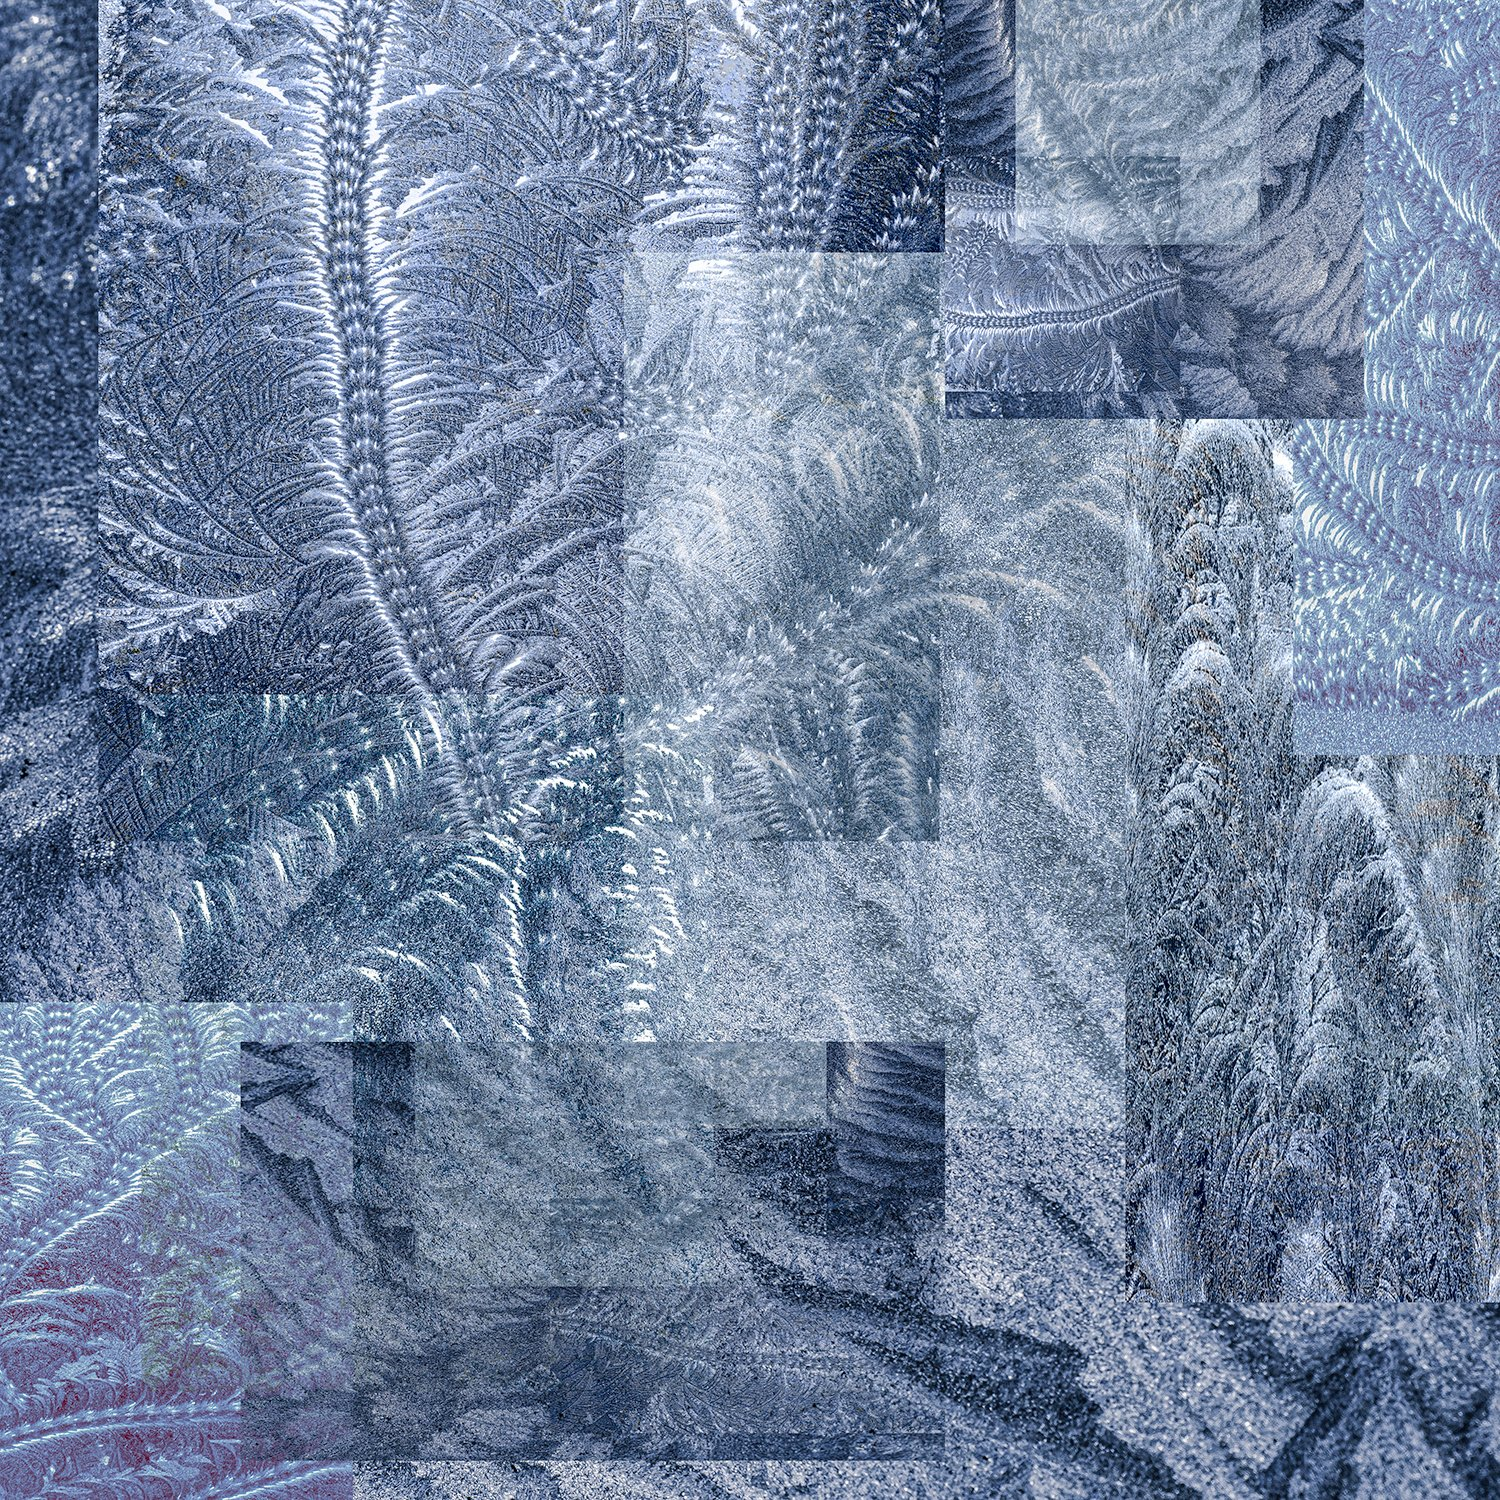 collage-shapes-textures-frost-patterns-blue-dark-ink -pressed-glass-fern-scroll